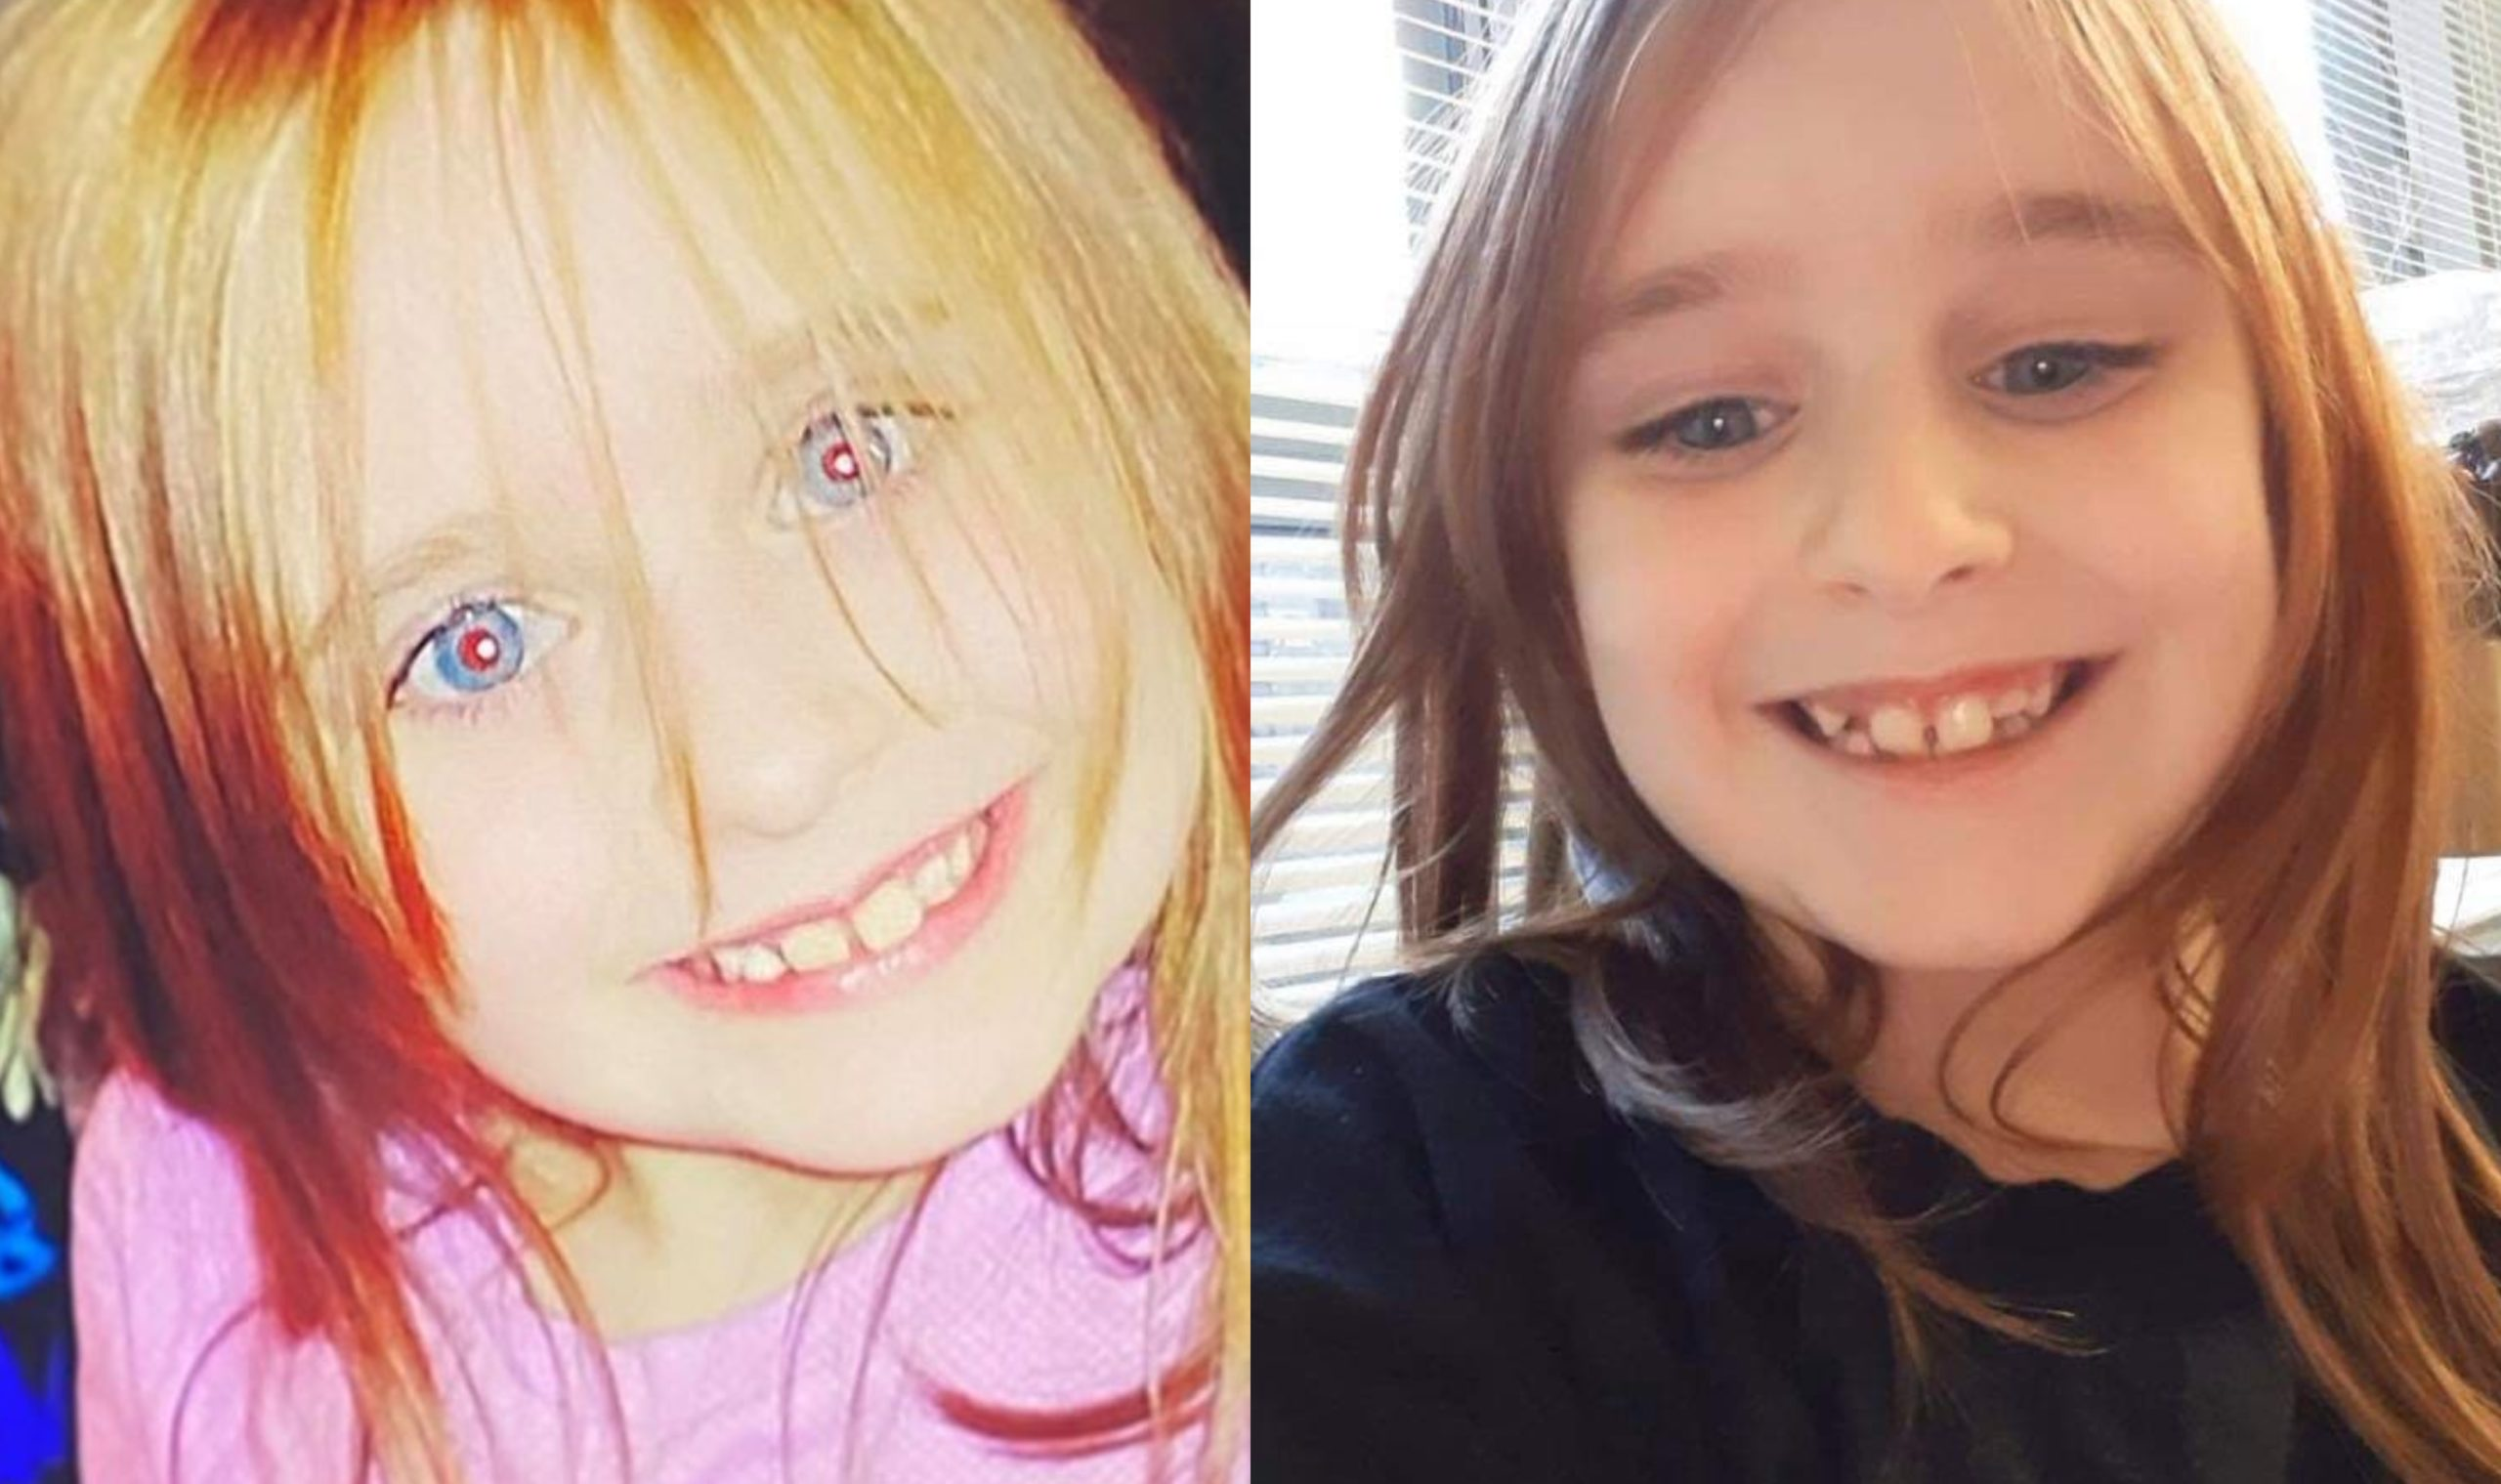 Police looking for vehicle where 6-year-old girl vanished